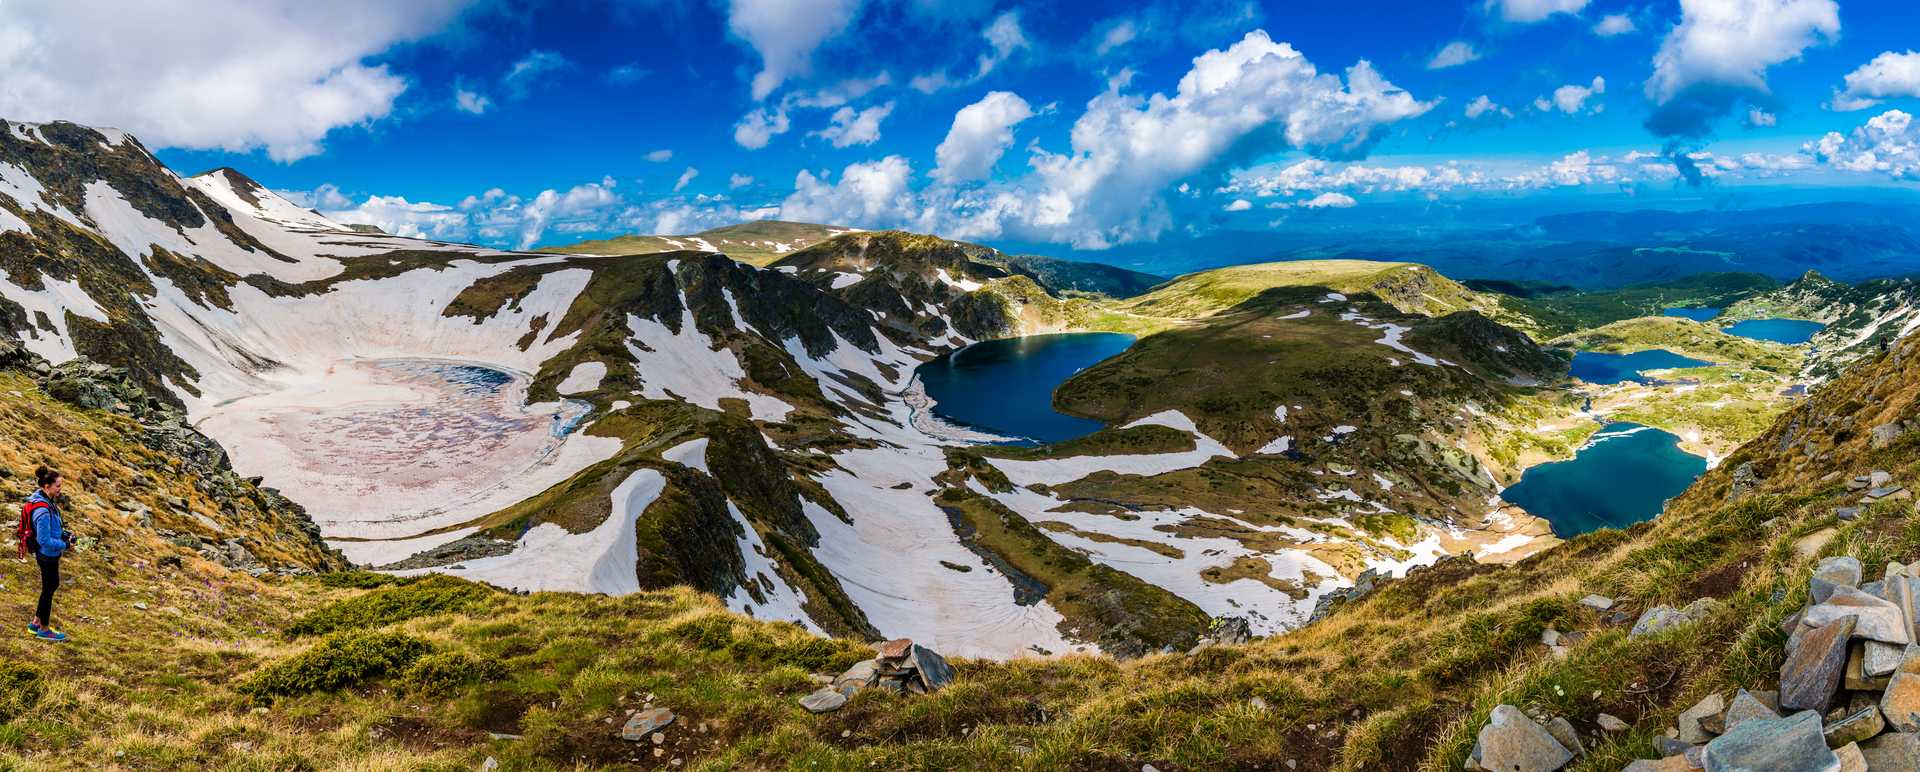 Parc national du Rila, Bulgarie